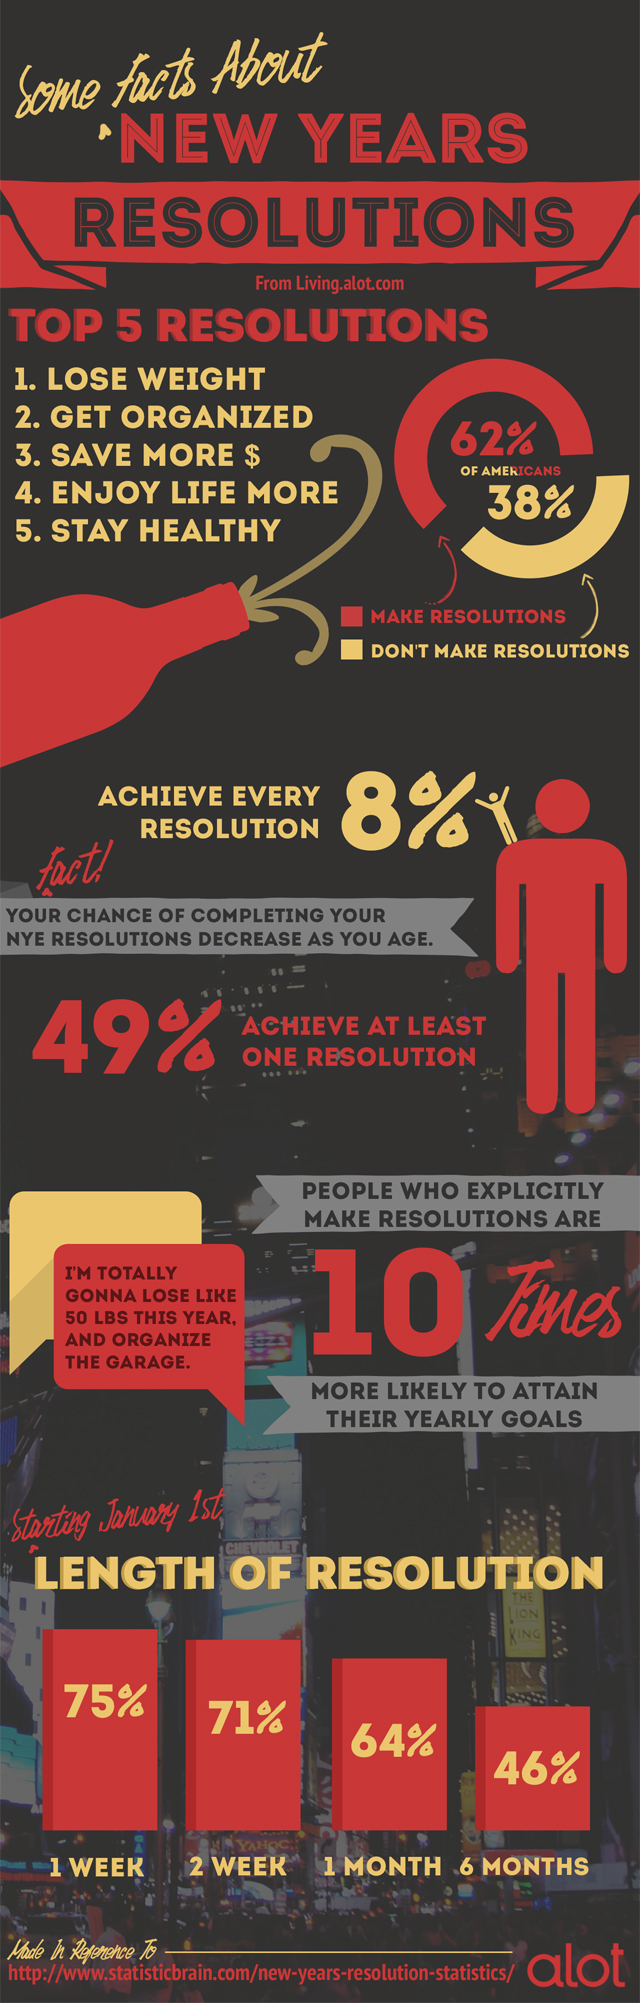 New Year's Resolution Facts